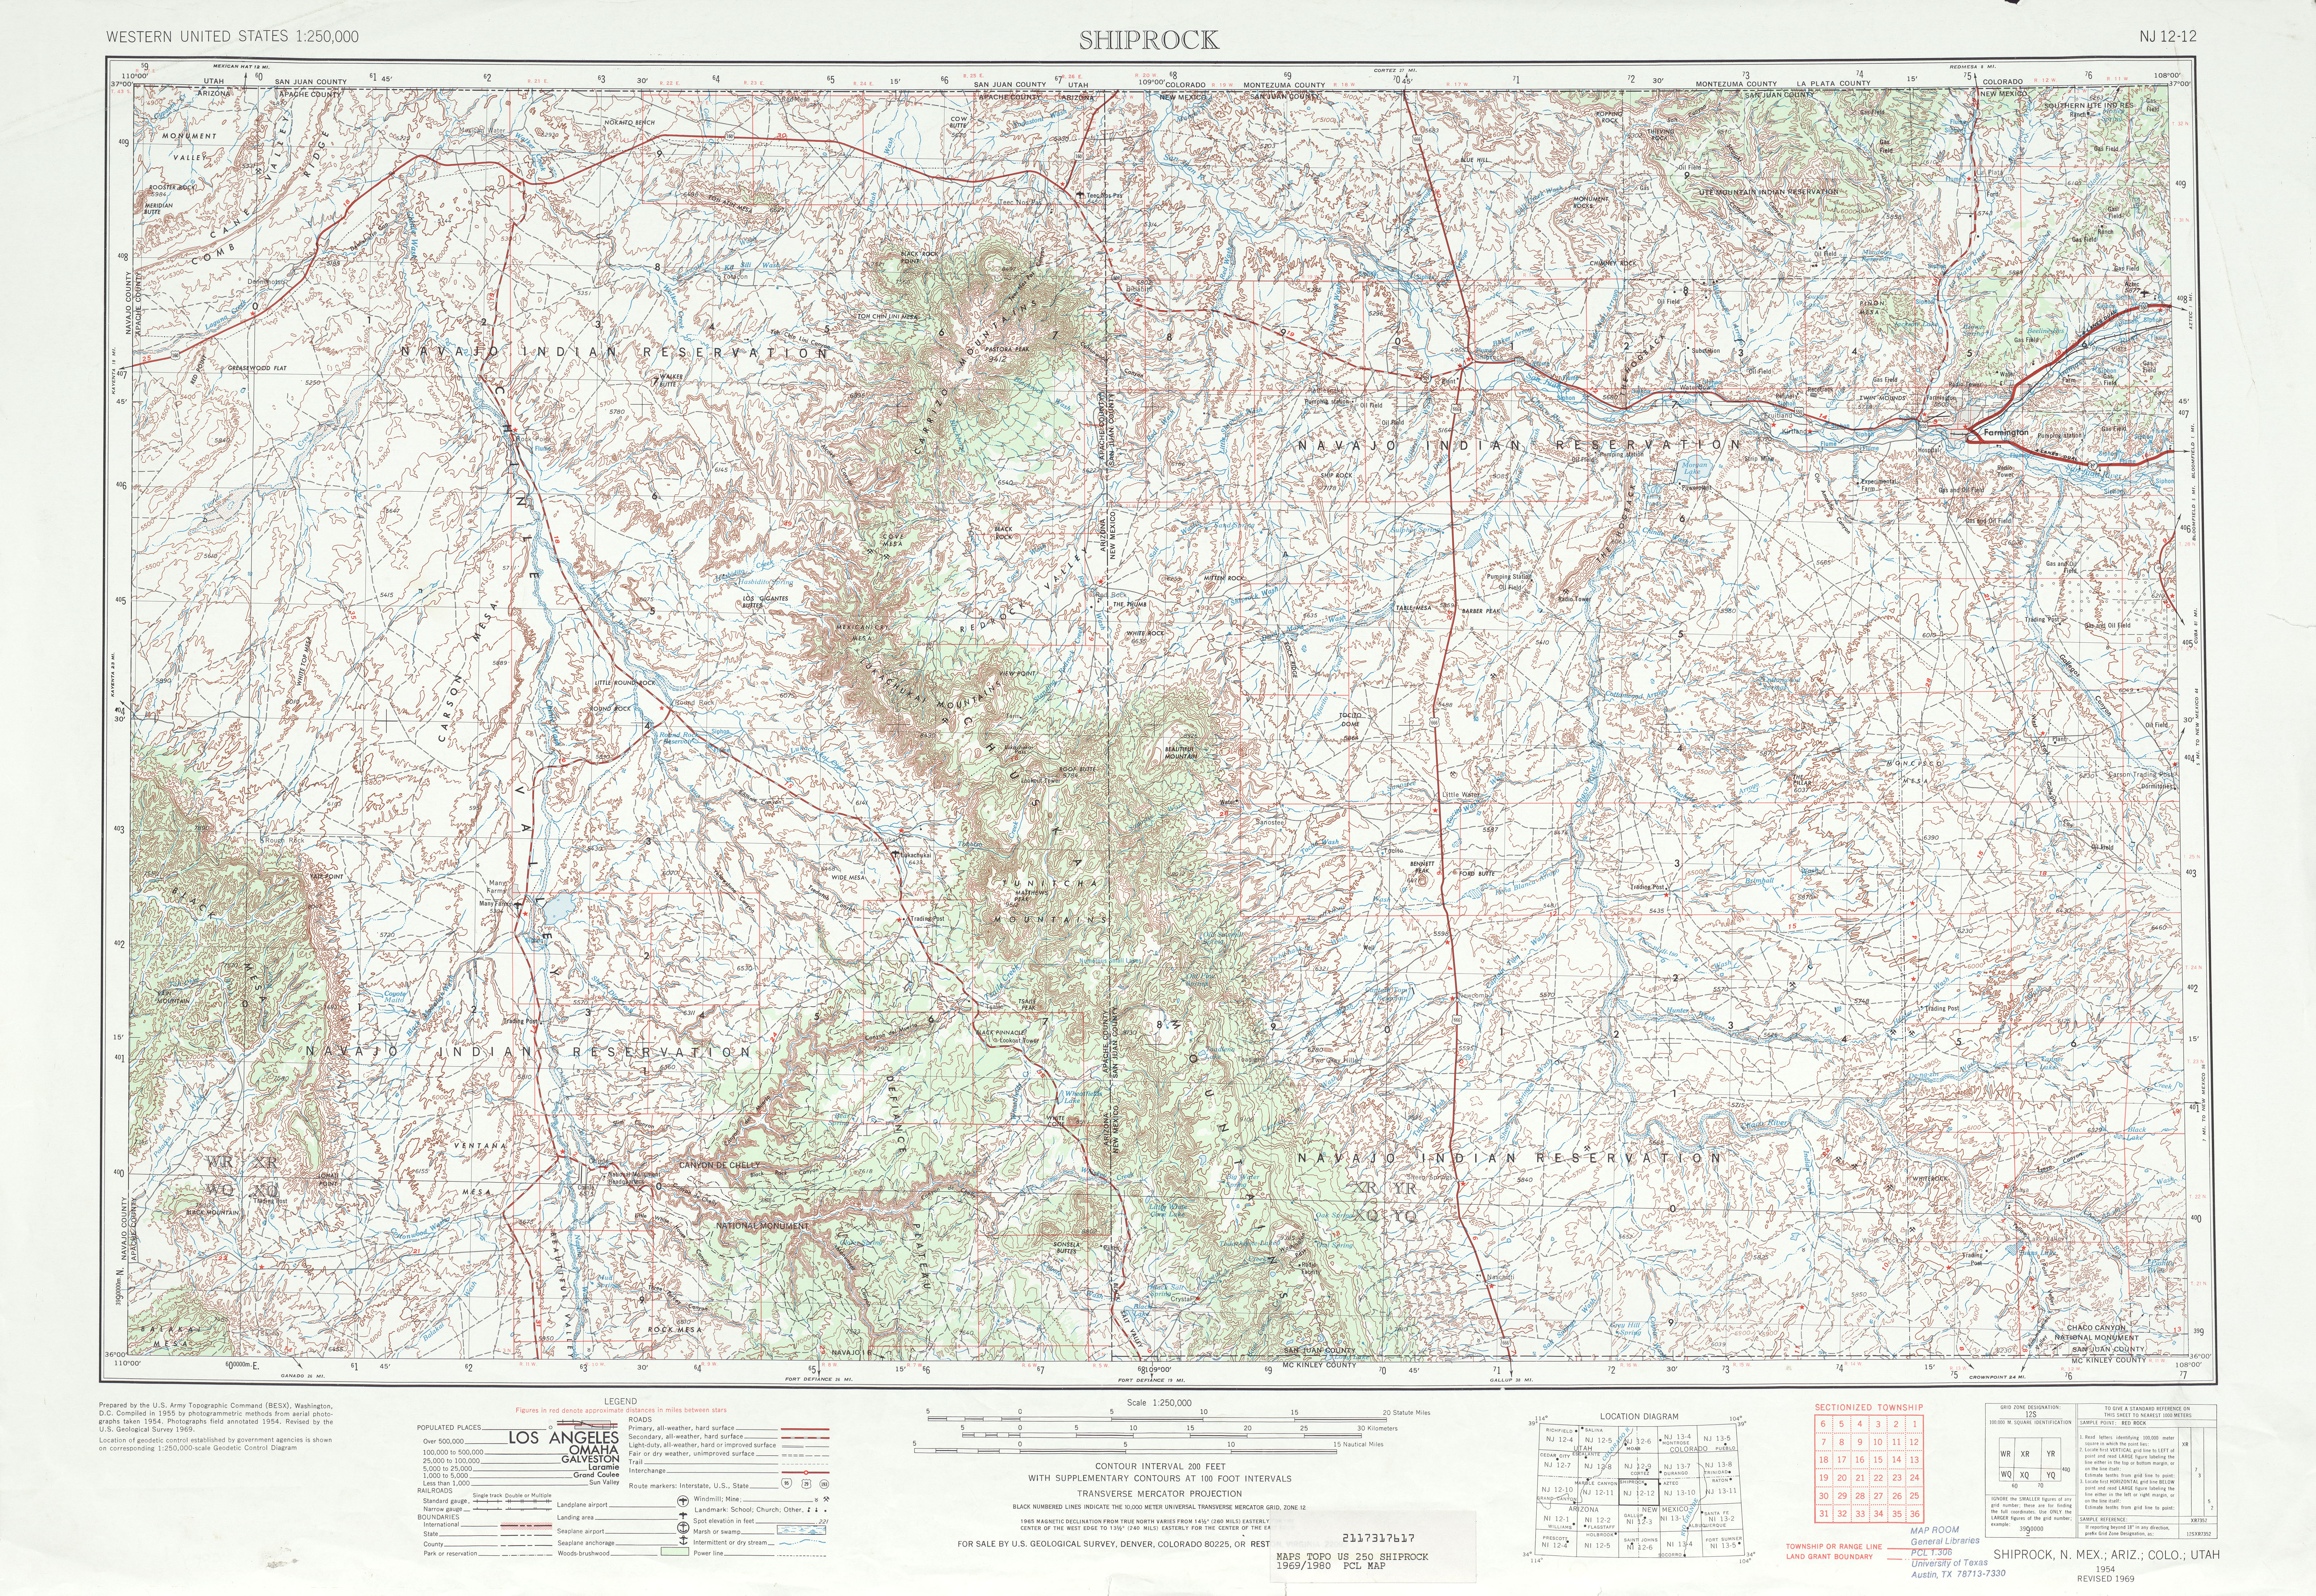 Shiprock Topographic Map Sheet, United States 1969